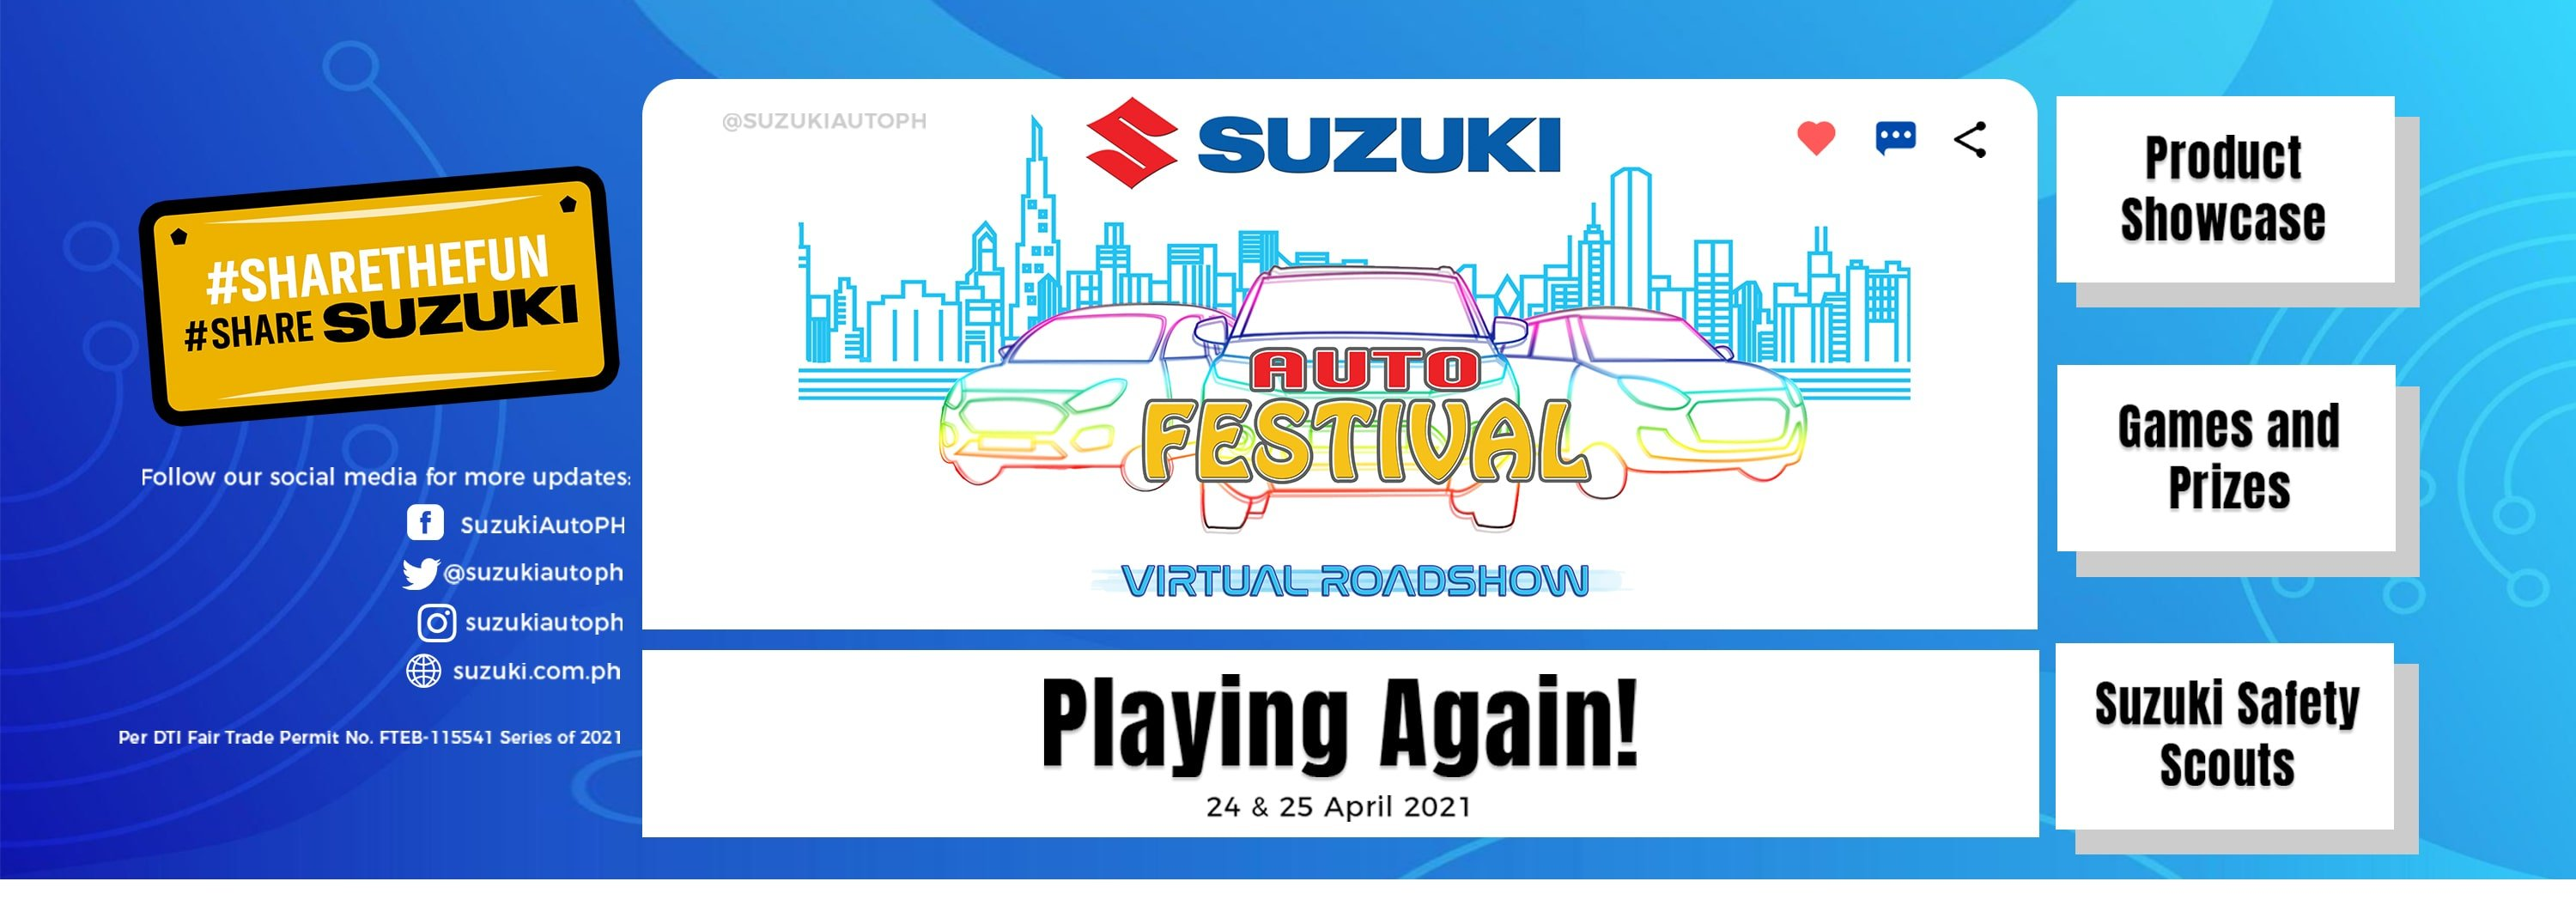 All Systems Go for Suzuki Auto Festival Virtual Roadshow